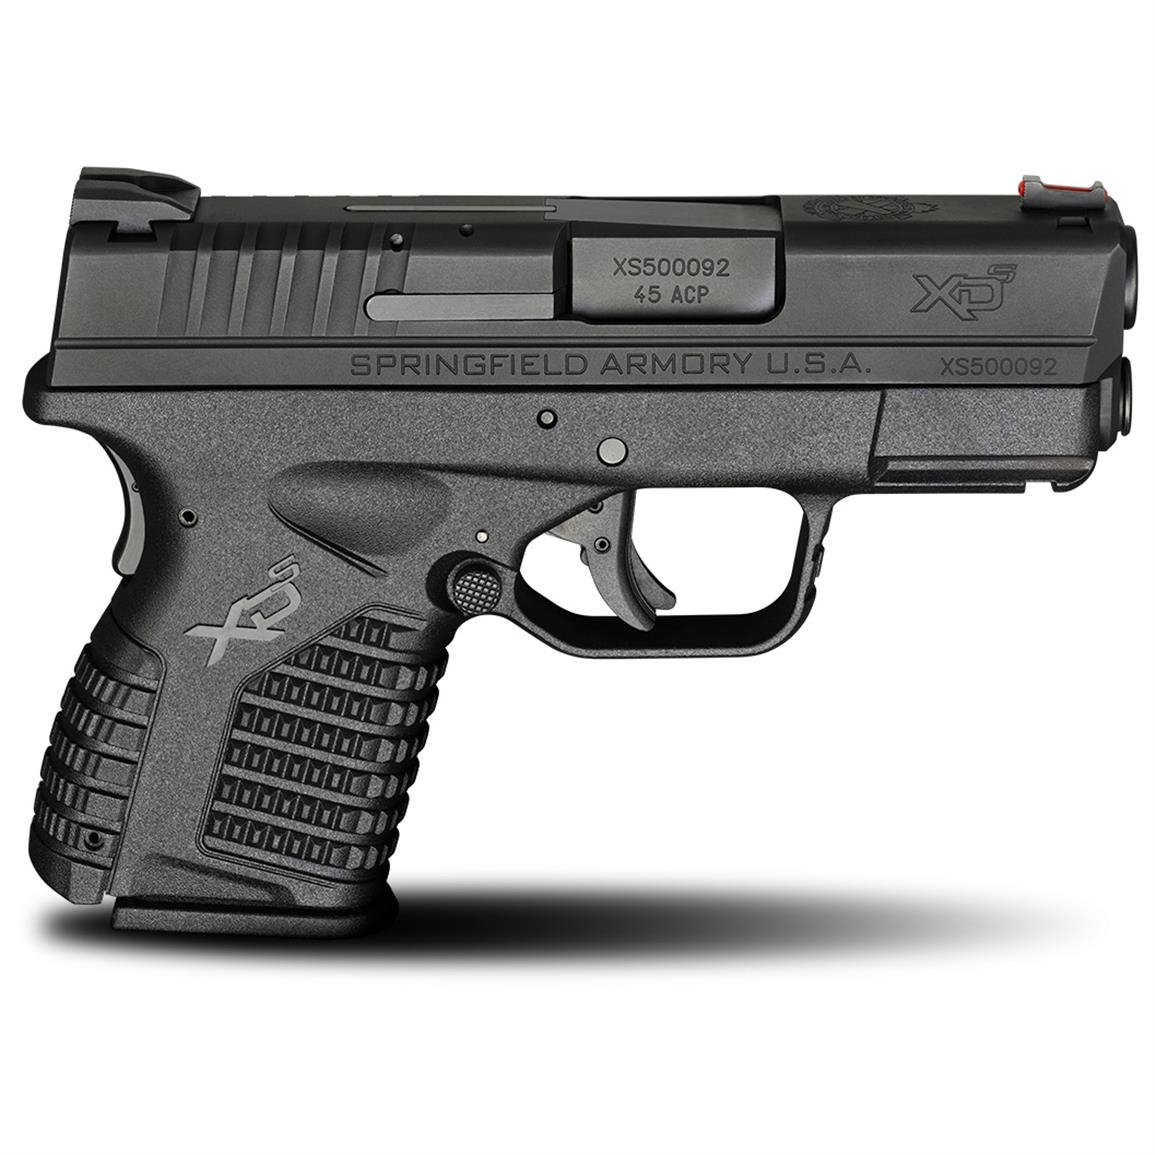 "Springfield XD-S, Semi-Automatic, .45 ACP, 3.3"" Barrel, 5+1/6+1 Rounds"